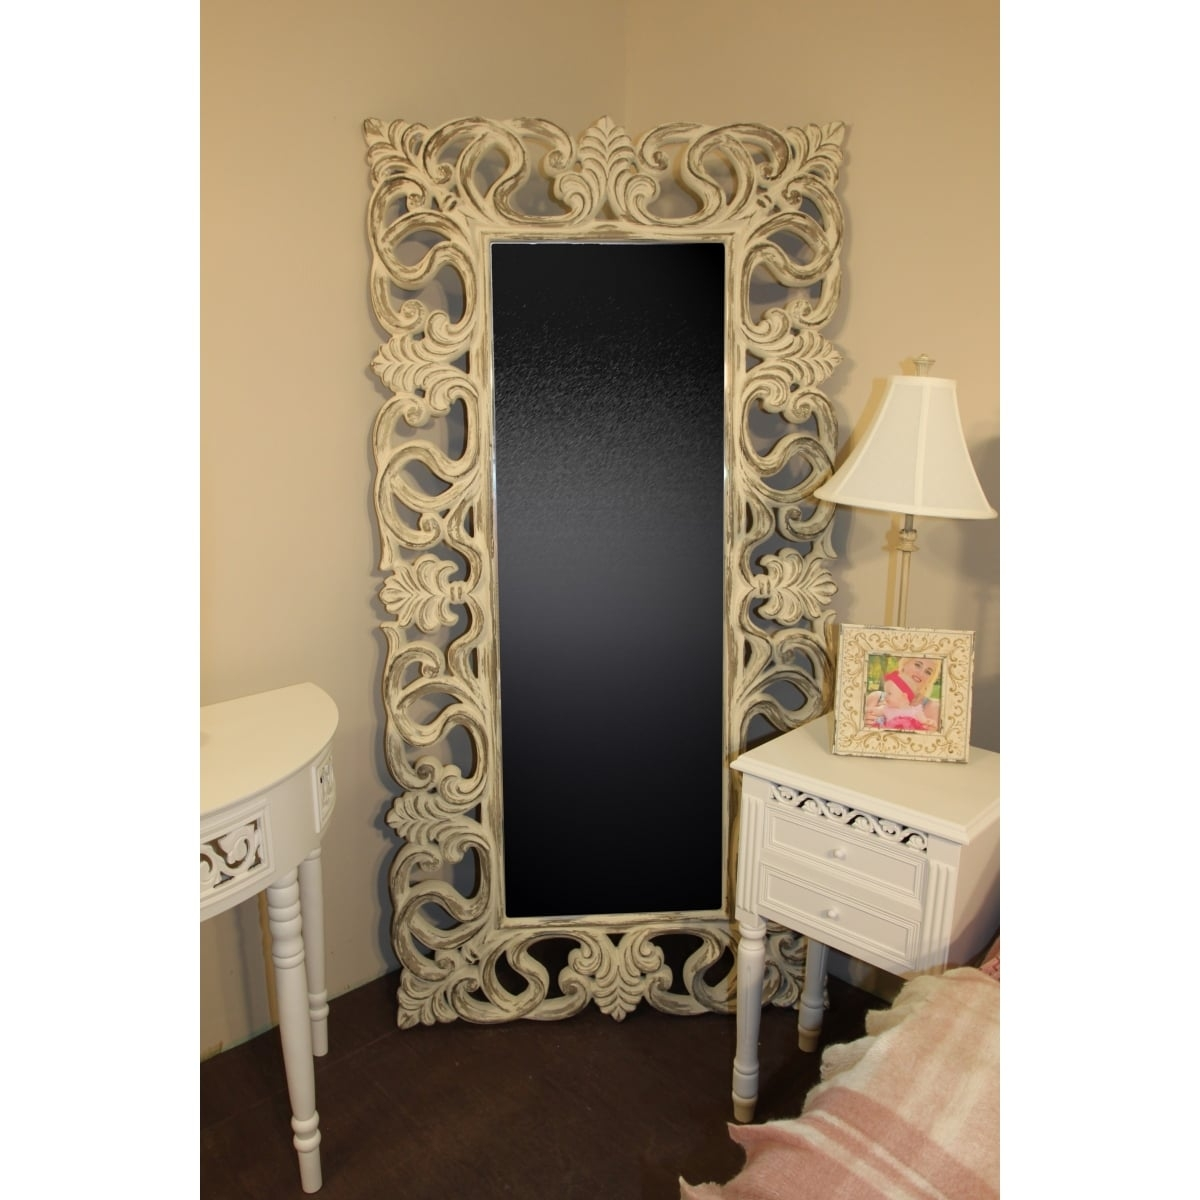 Full Length Mirror Shab Chic Swanky Interiors Within Cheap Shabby Chic Mirrors (Image 7 of 15)